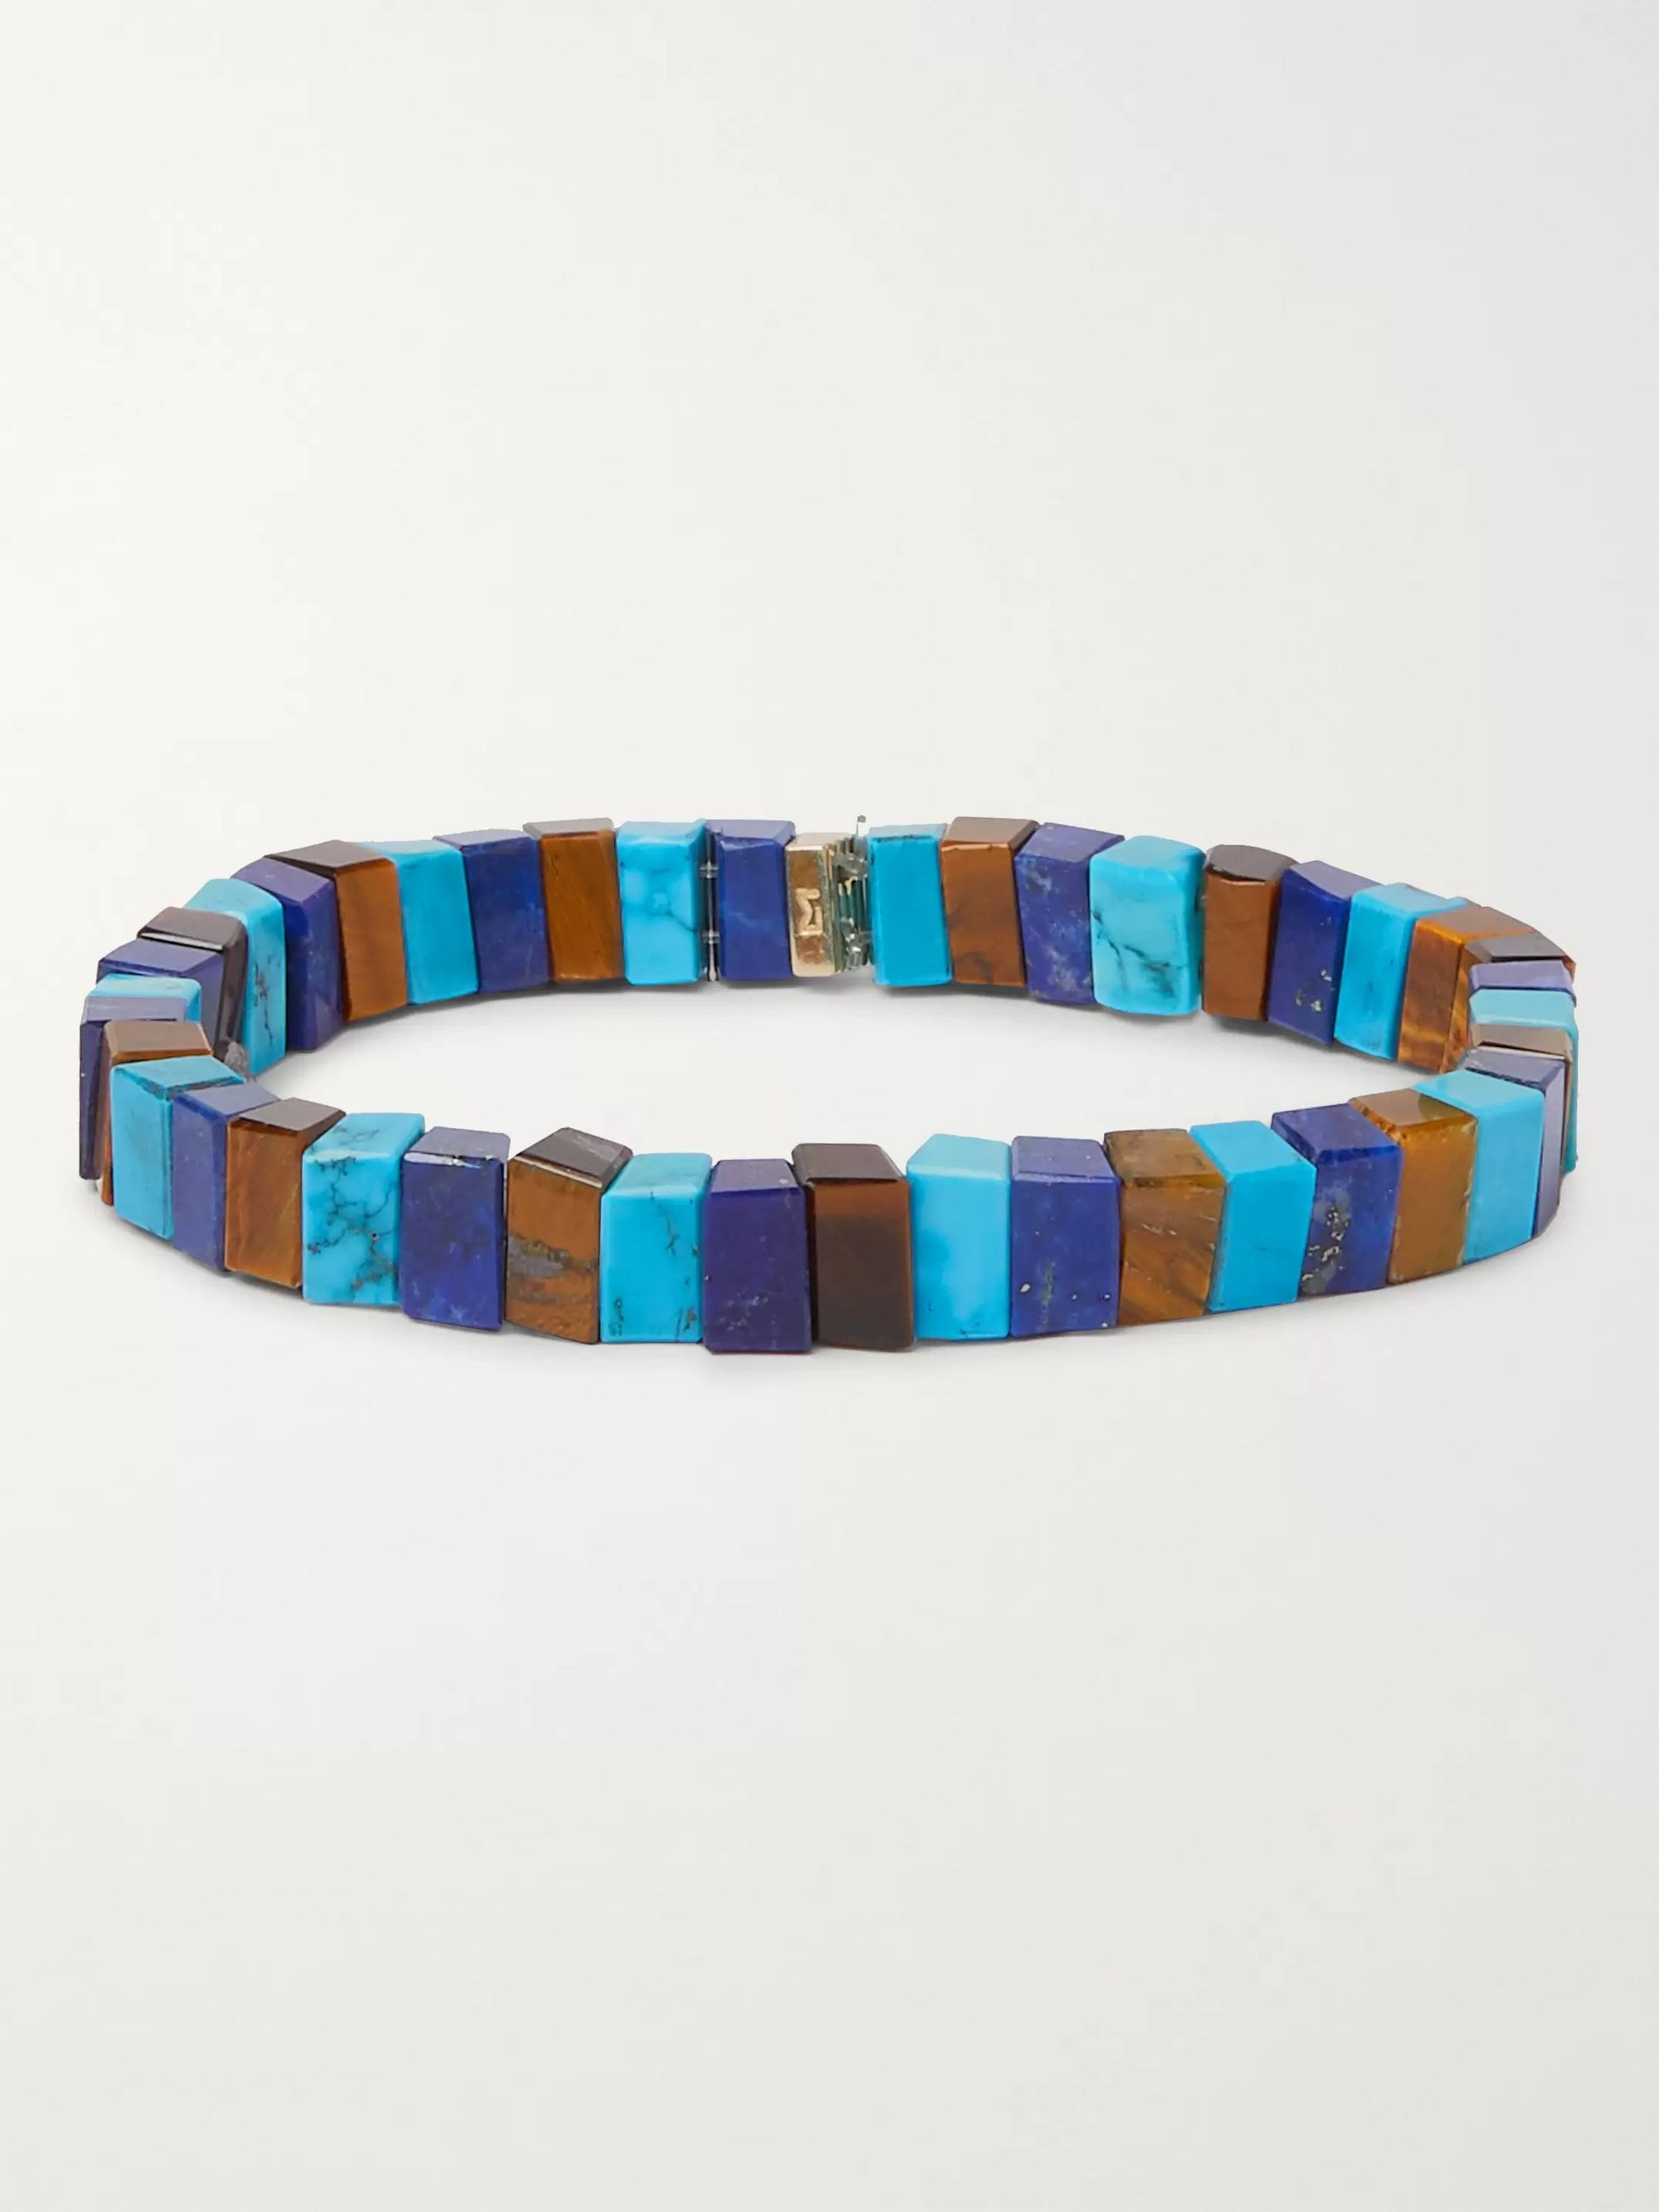 Luis Morais 14-Karat Gold Lapis, Turquoise and Tiger's Eye Bracelet